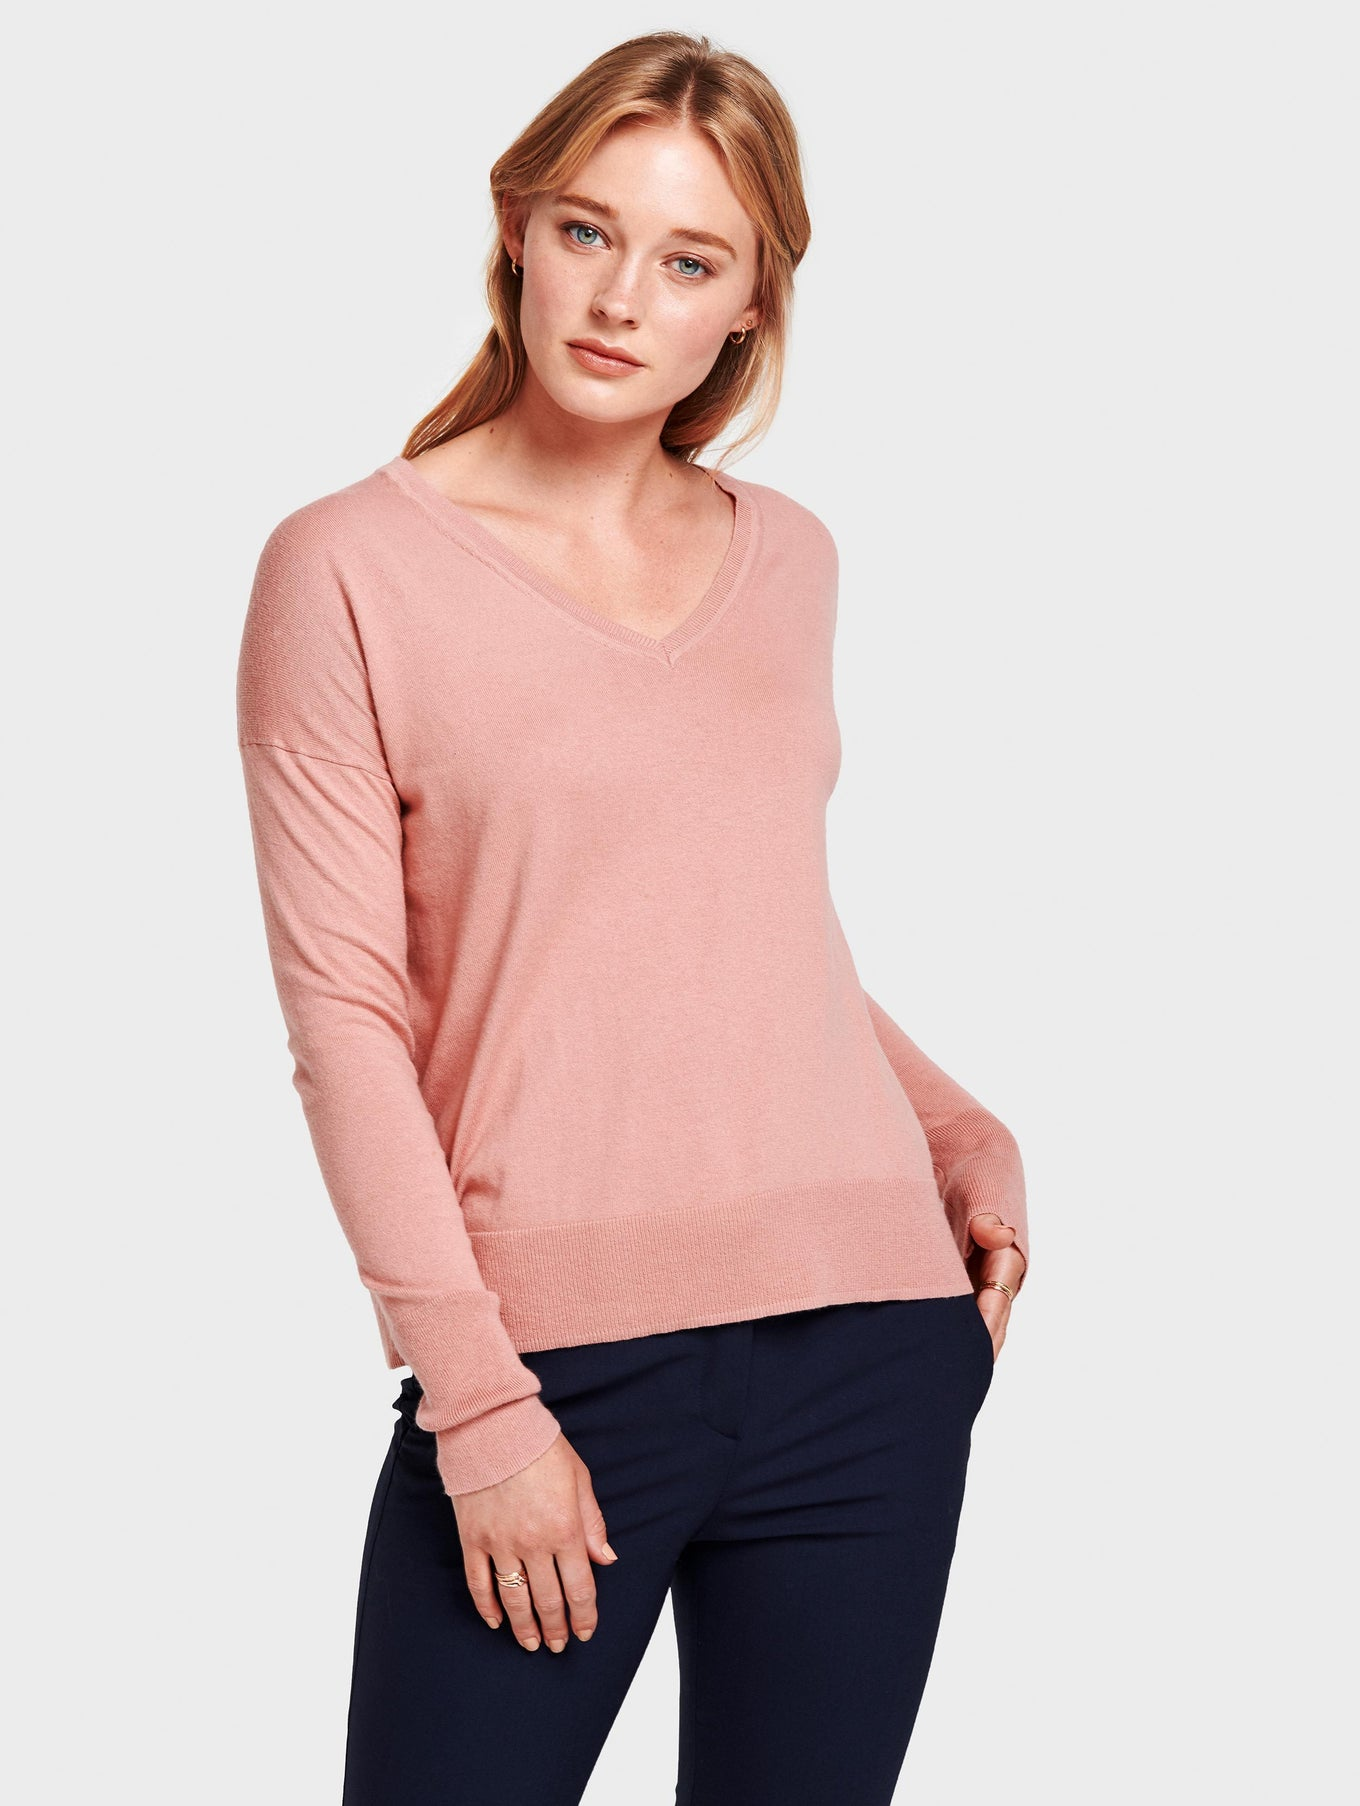 Drop Shoulder V Neck - Canyon Rose Heather - Image 3